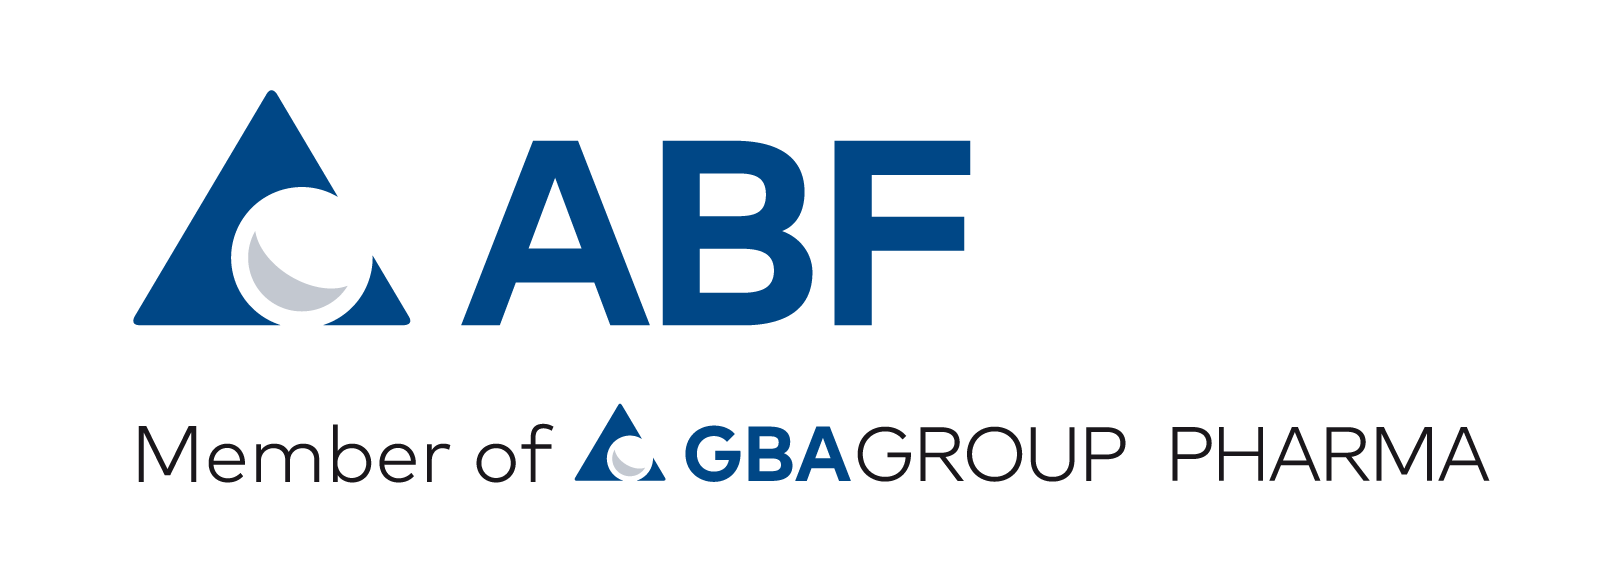 ABF Pharmaceutical Services GmbH - Member of the GBA GROUP PHARMA